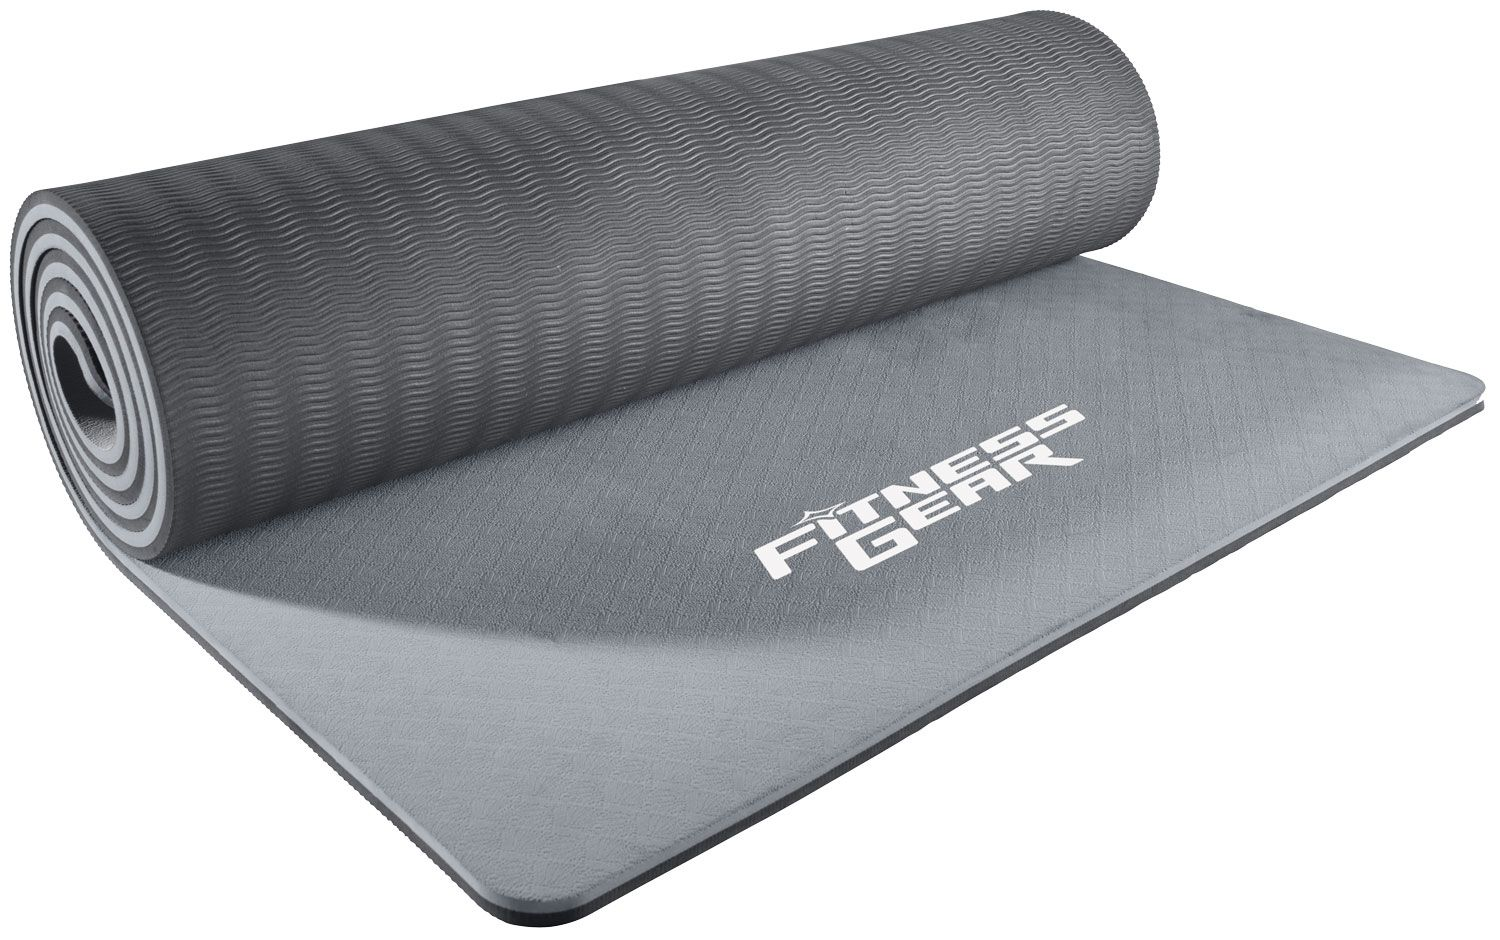 Rubber gym flooring treadmill mats dicks sporting goods product image fitness gear multi purpose exercise mat dailygadgetfo Choice Image